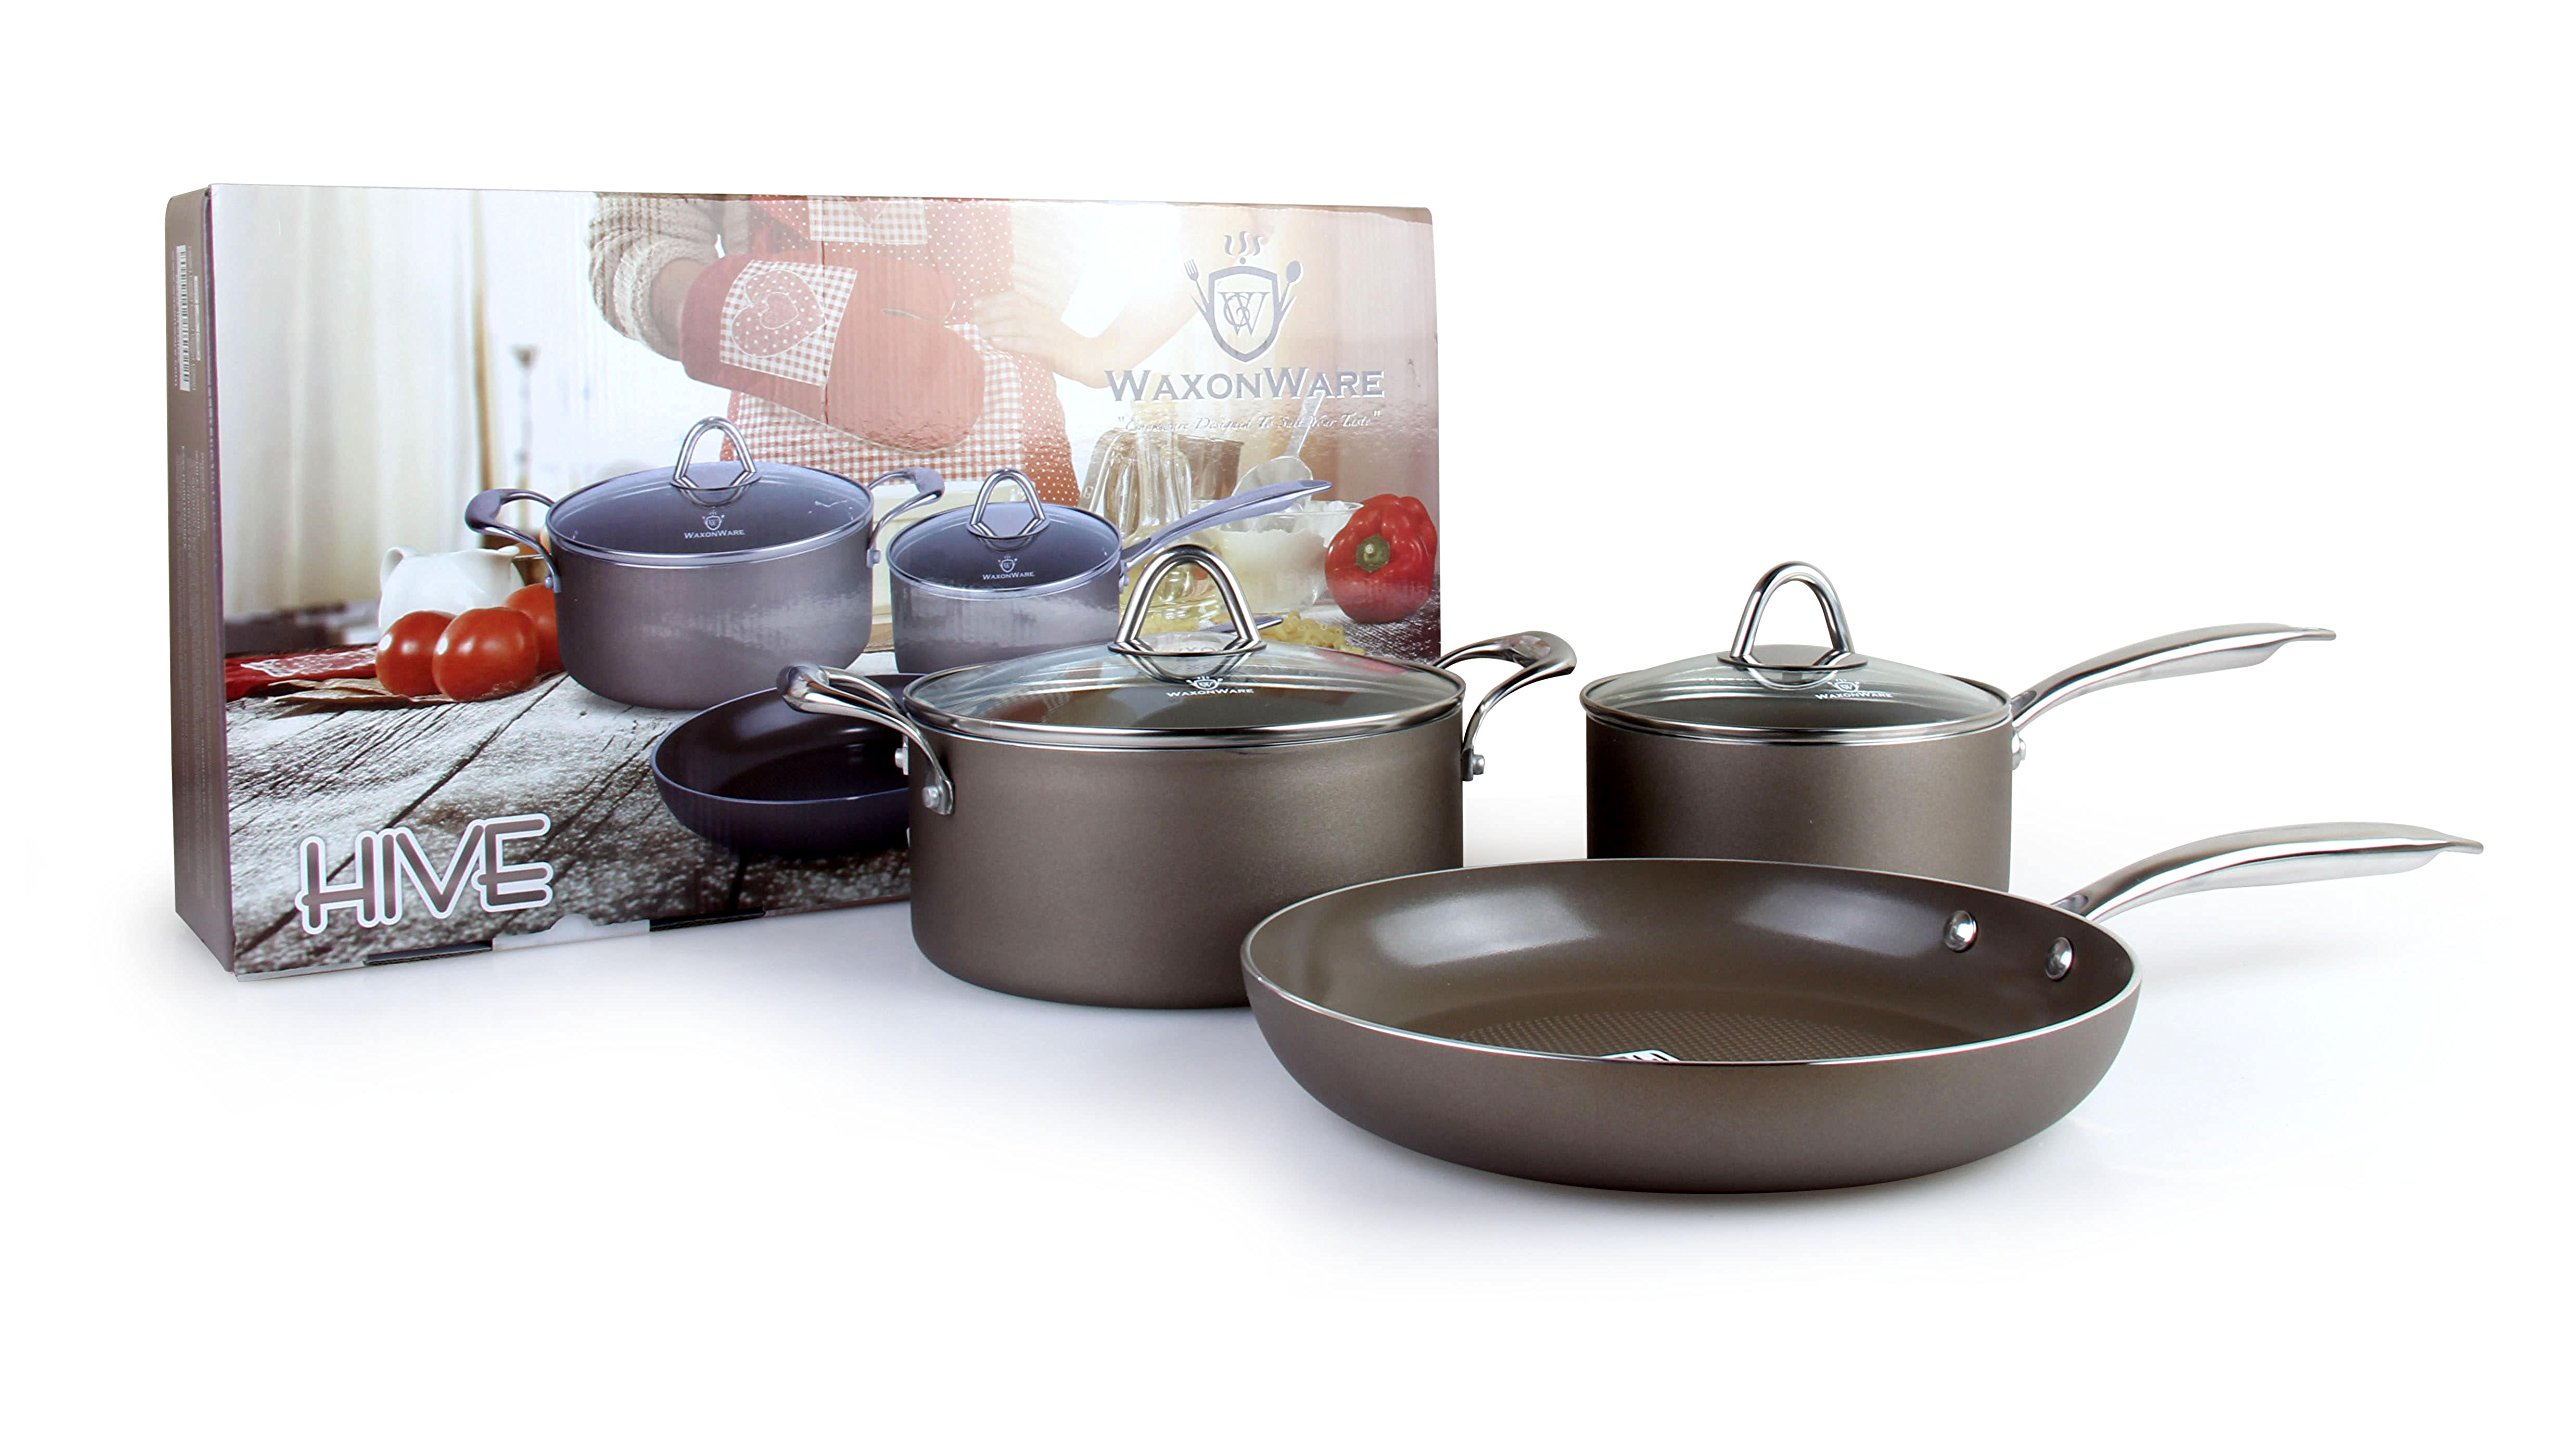 WaxonWare Hive Nonstick Cookware Set 5 PCS Pots and Pans Set (Frying Pan, Saucepan, Dutch Oven) - PTFE, PFOA and APEO Free Plus Induction & Oven Safe by WaxonWare (Image #7)